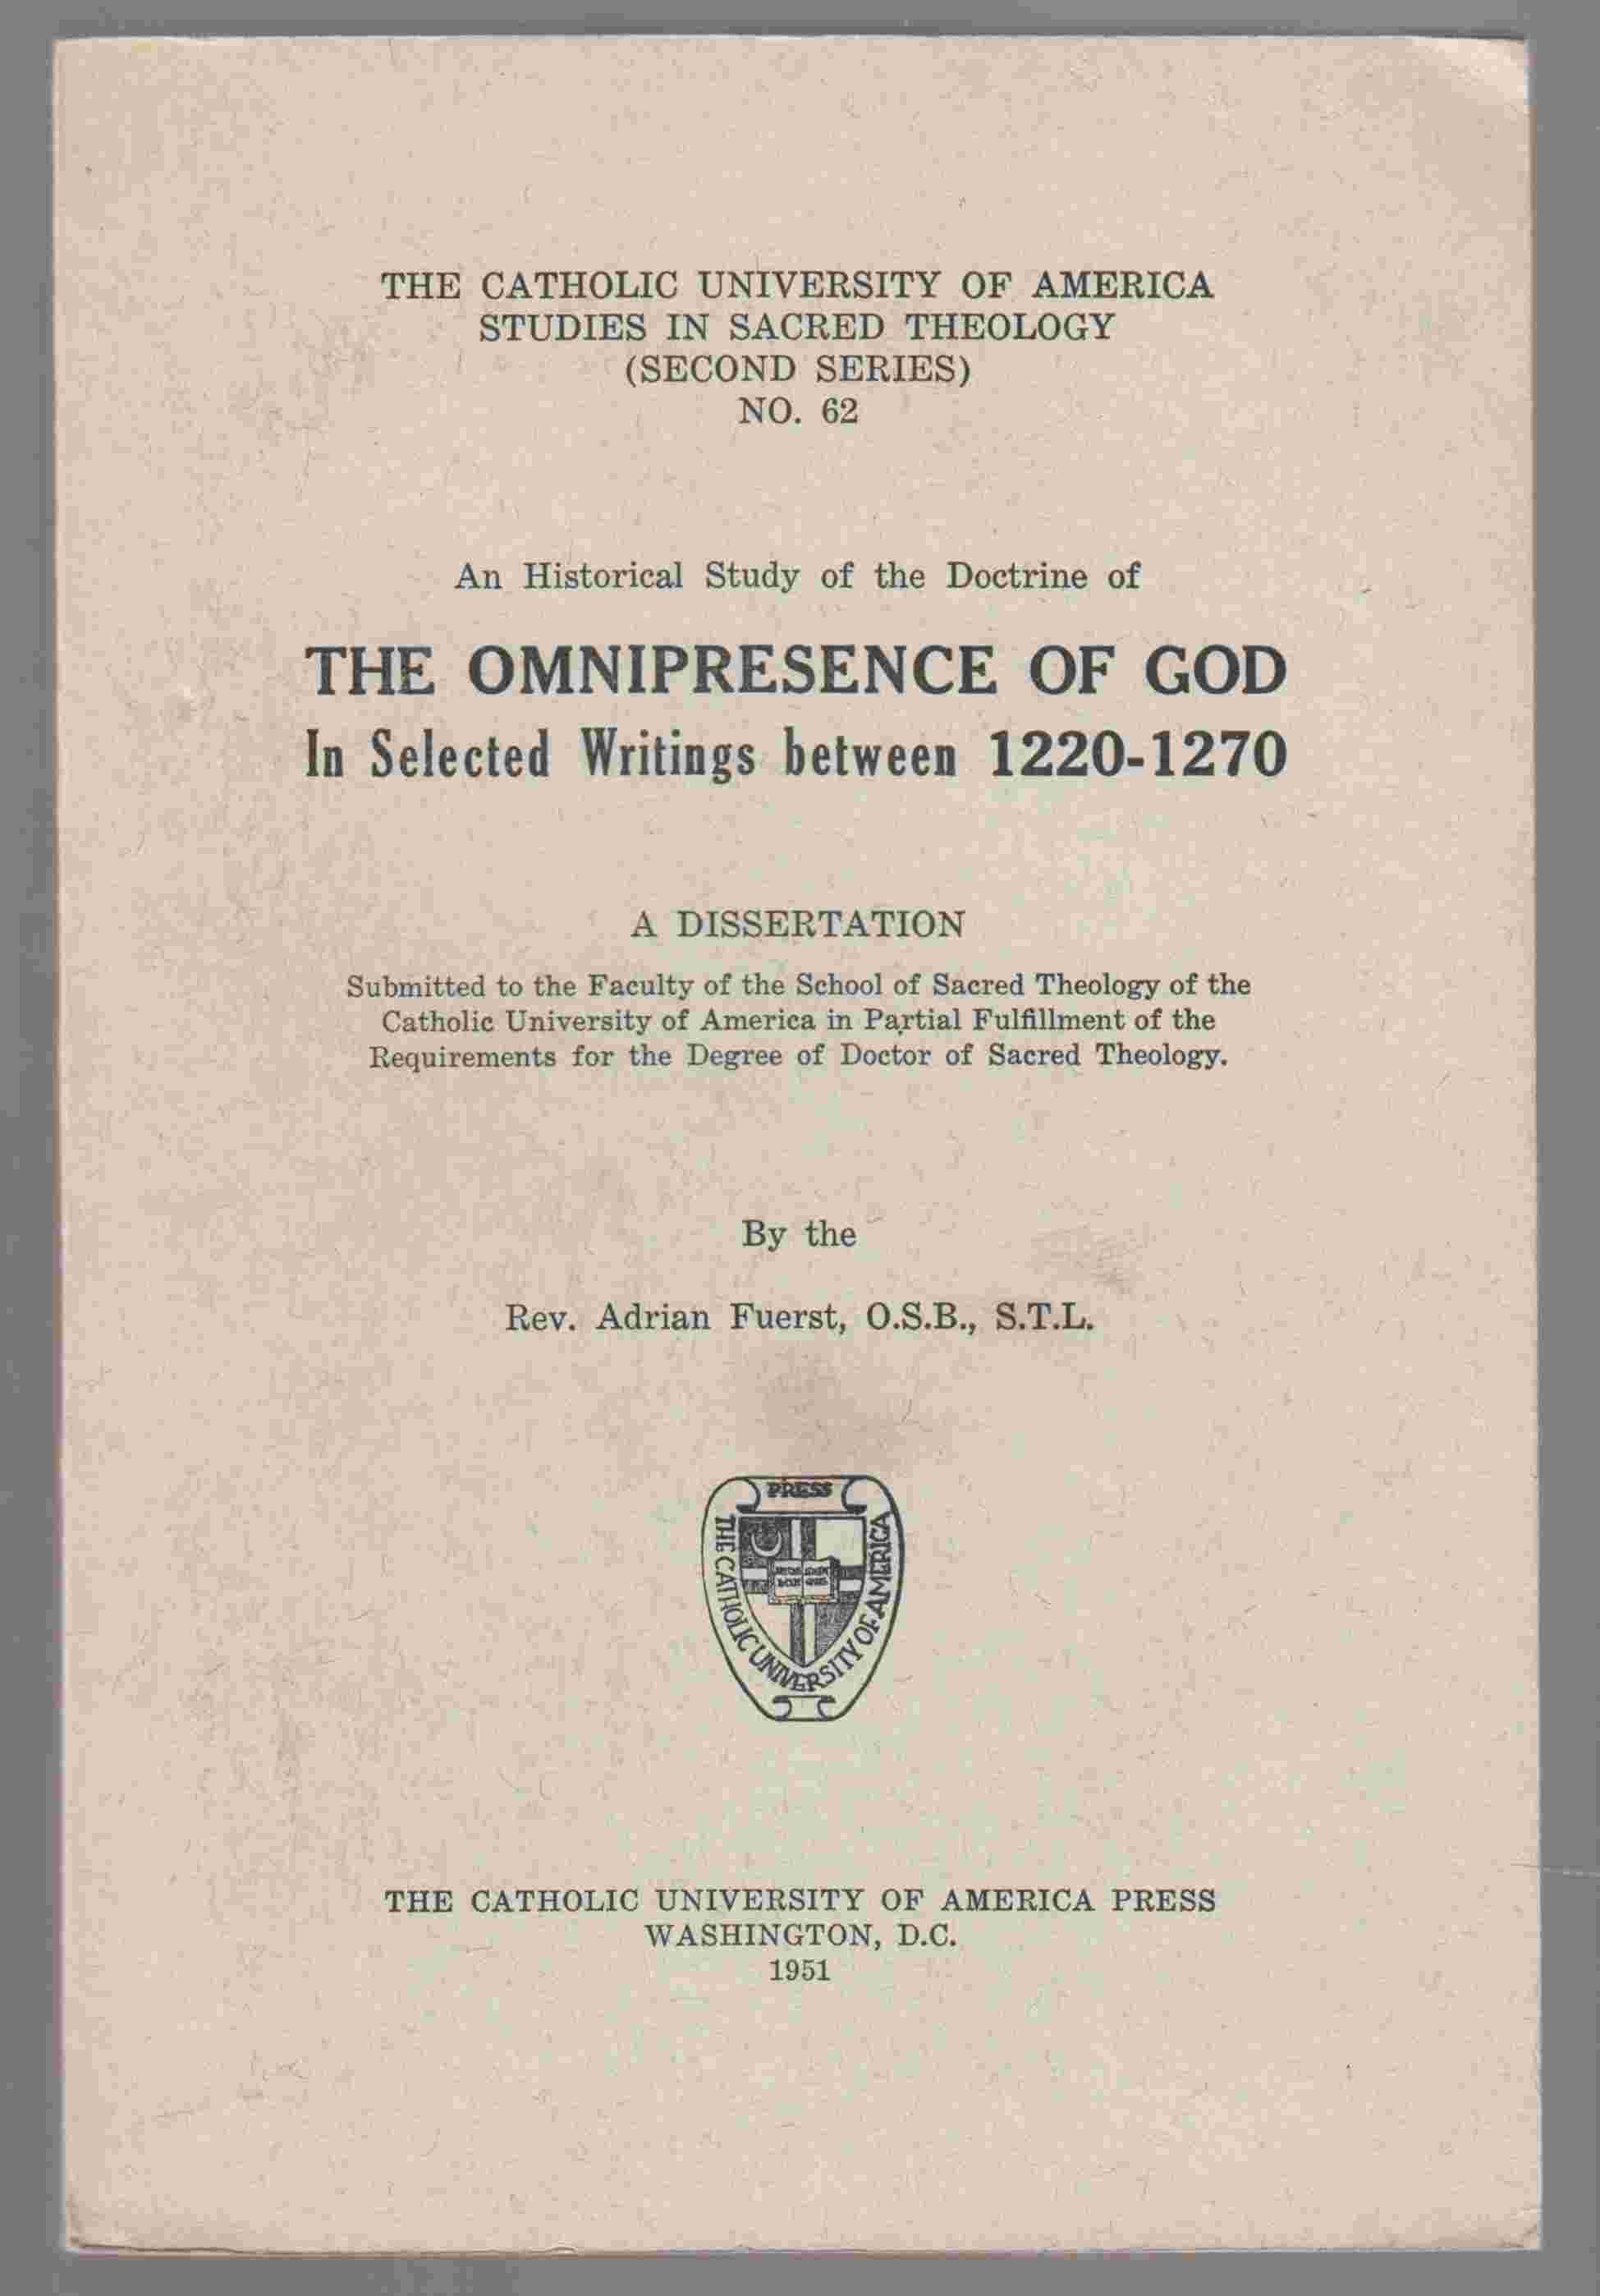 Image for An Historical Study of the Doctrine of the Omnipresence of God in Selected Writings between 1220-1270